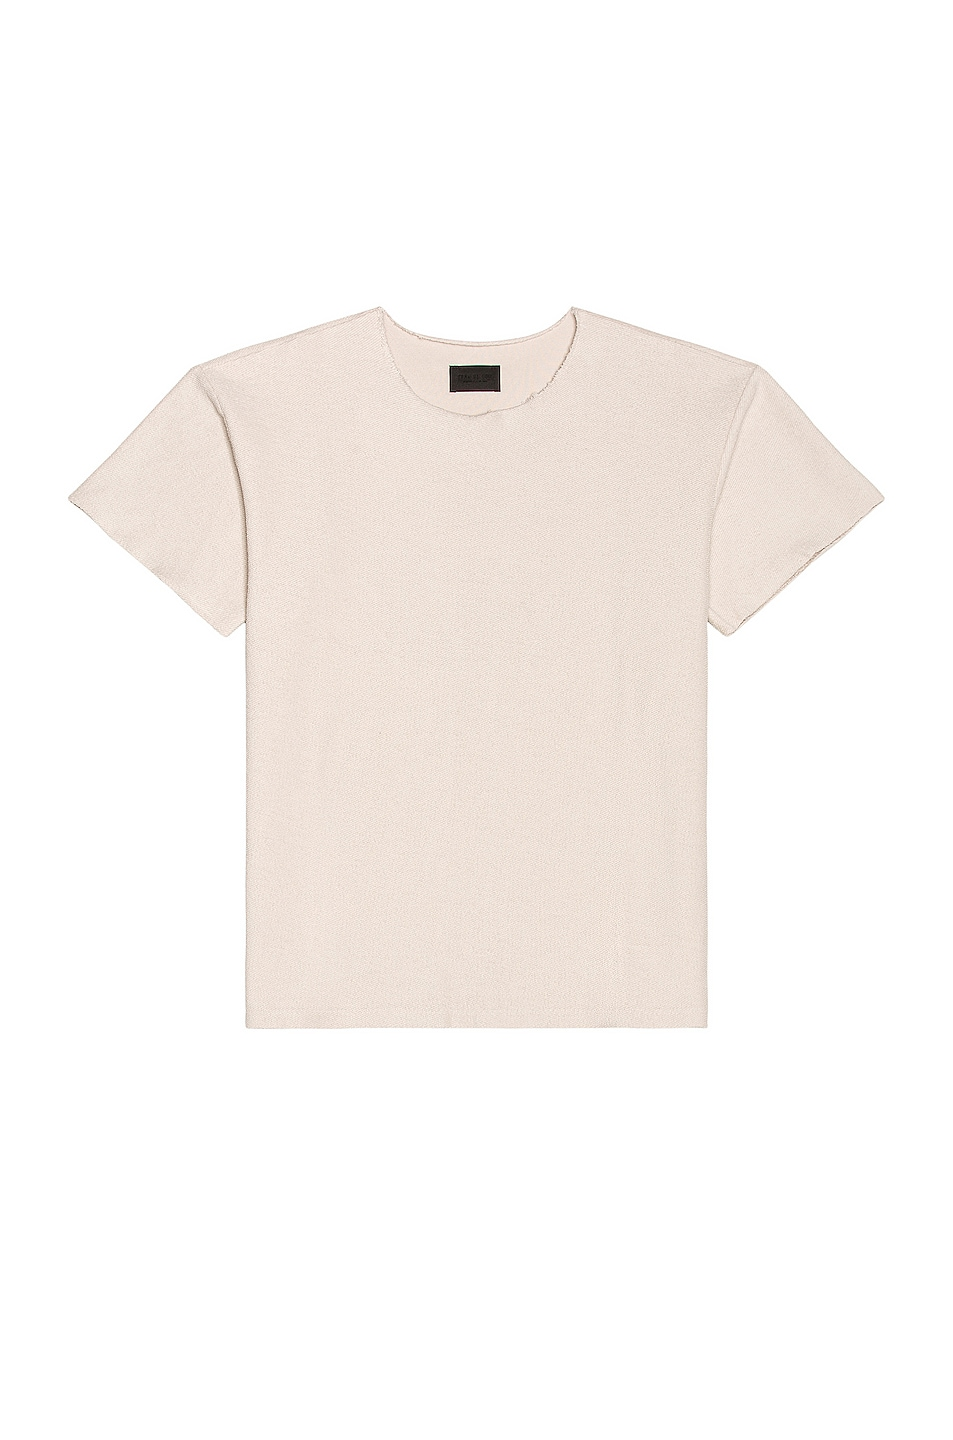 Image 1 of Fear of God Inside Out Terry Tee in Concrete White